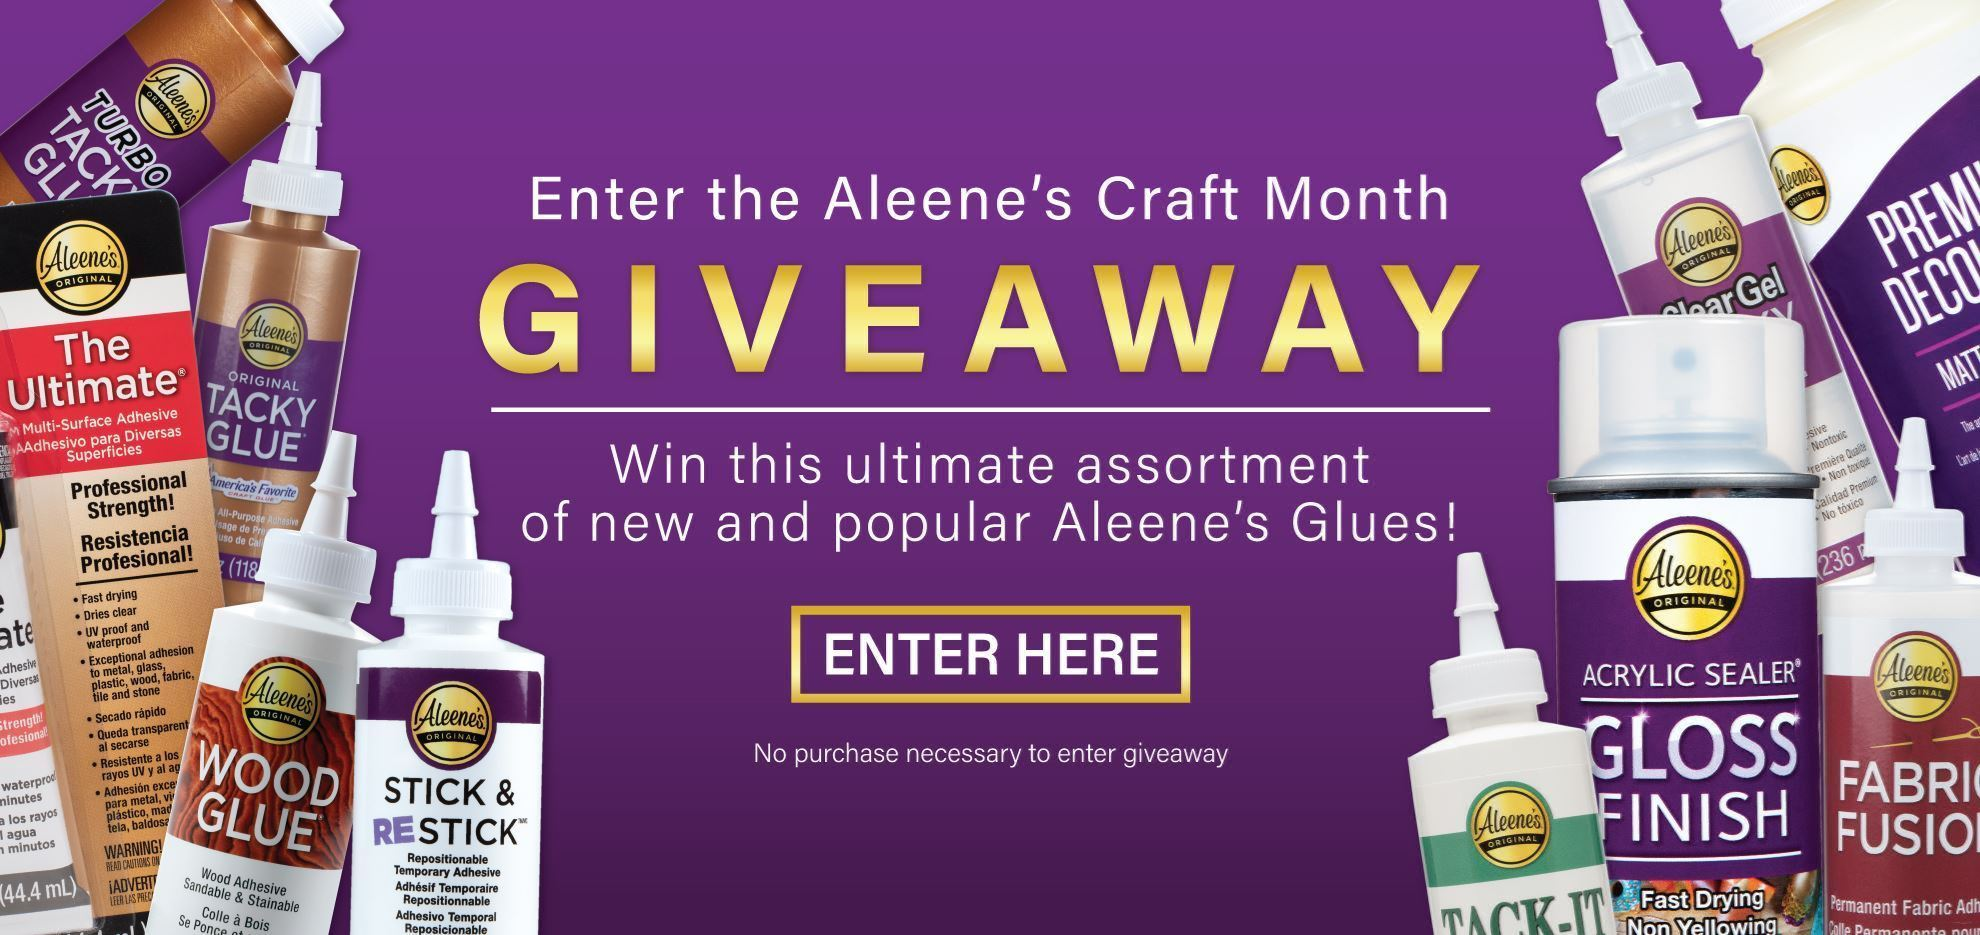 March 2021 Aleene's Craft Month Giveaway